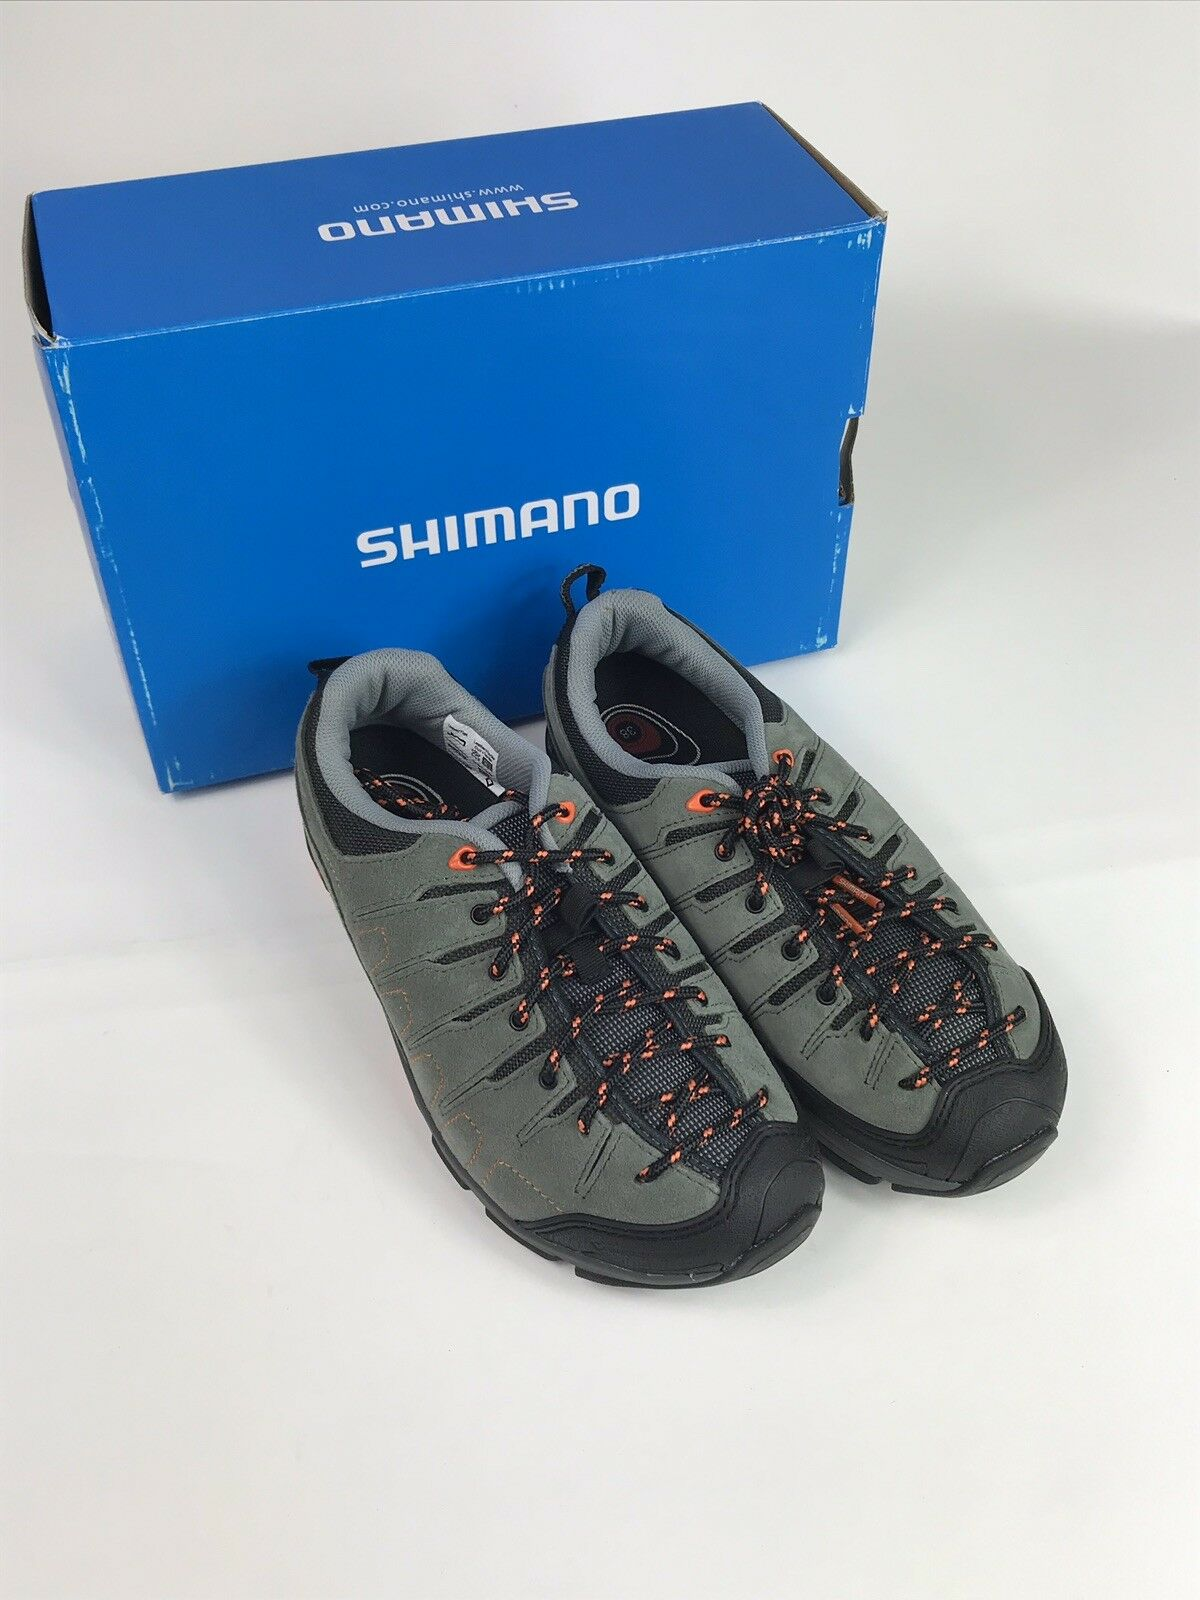 Shimano SH-CT80GO Unisex Cycling shoes Sz 38  US 5.2  New With Box Ships Free  order now lowest prices